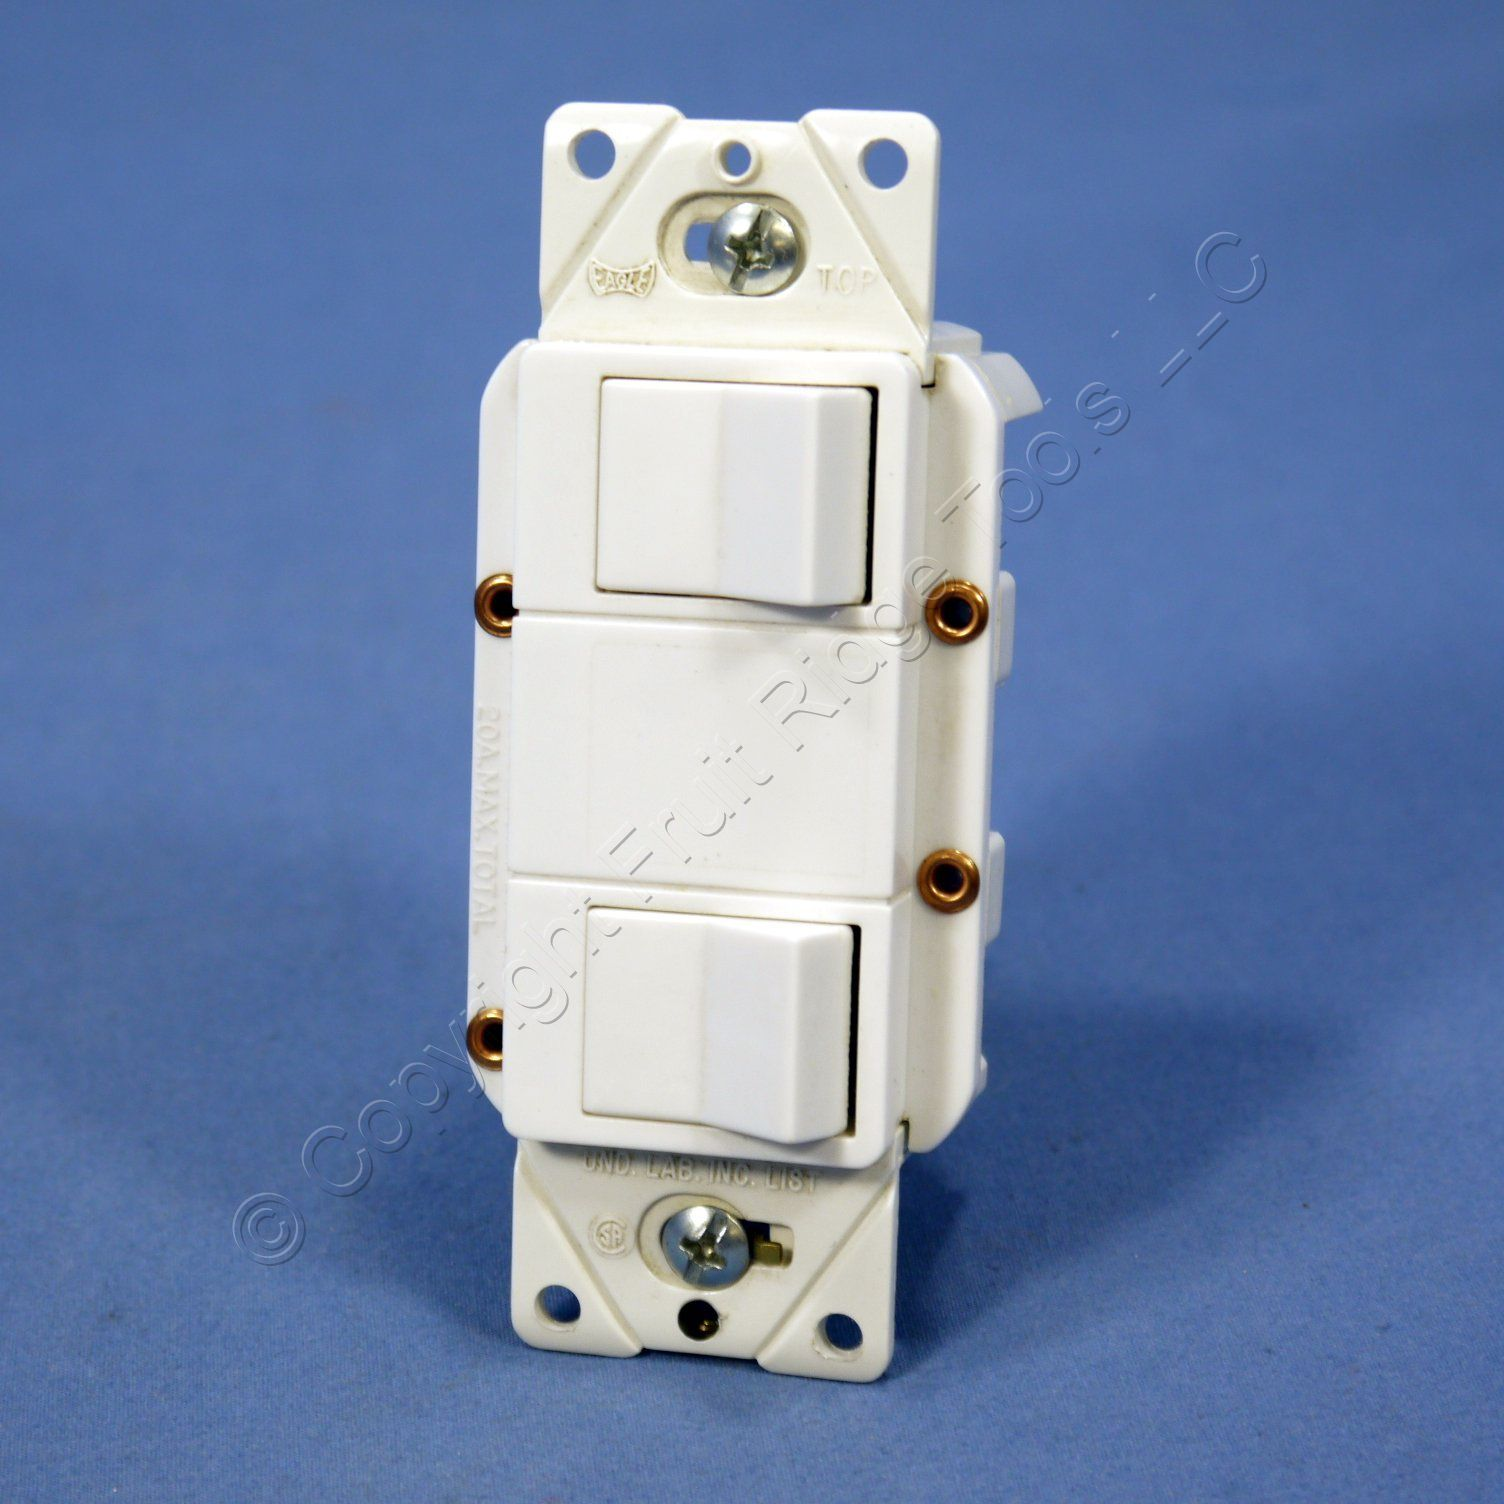 hight resolution of cooper white double rocker wall light switch decorator single pole 15a